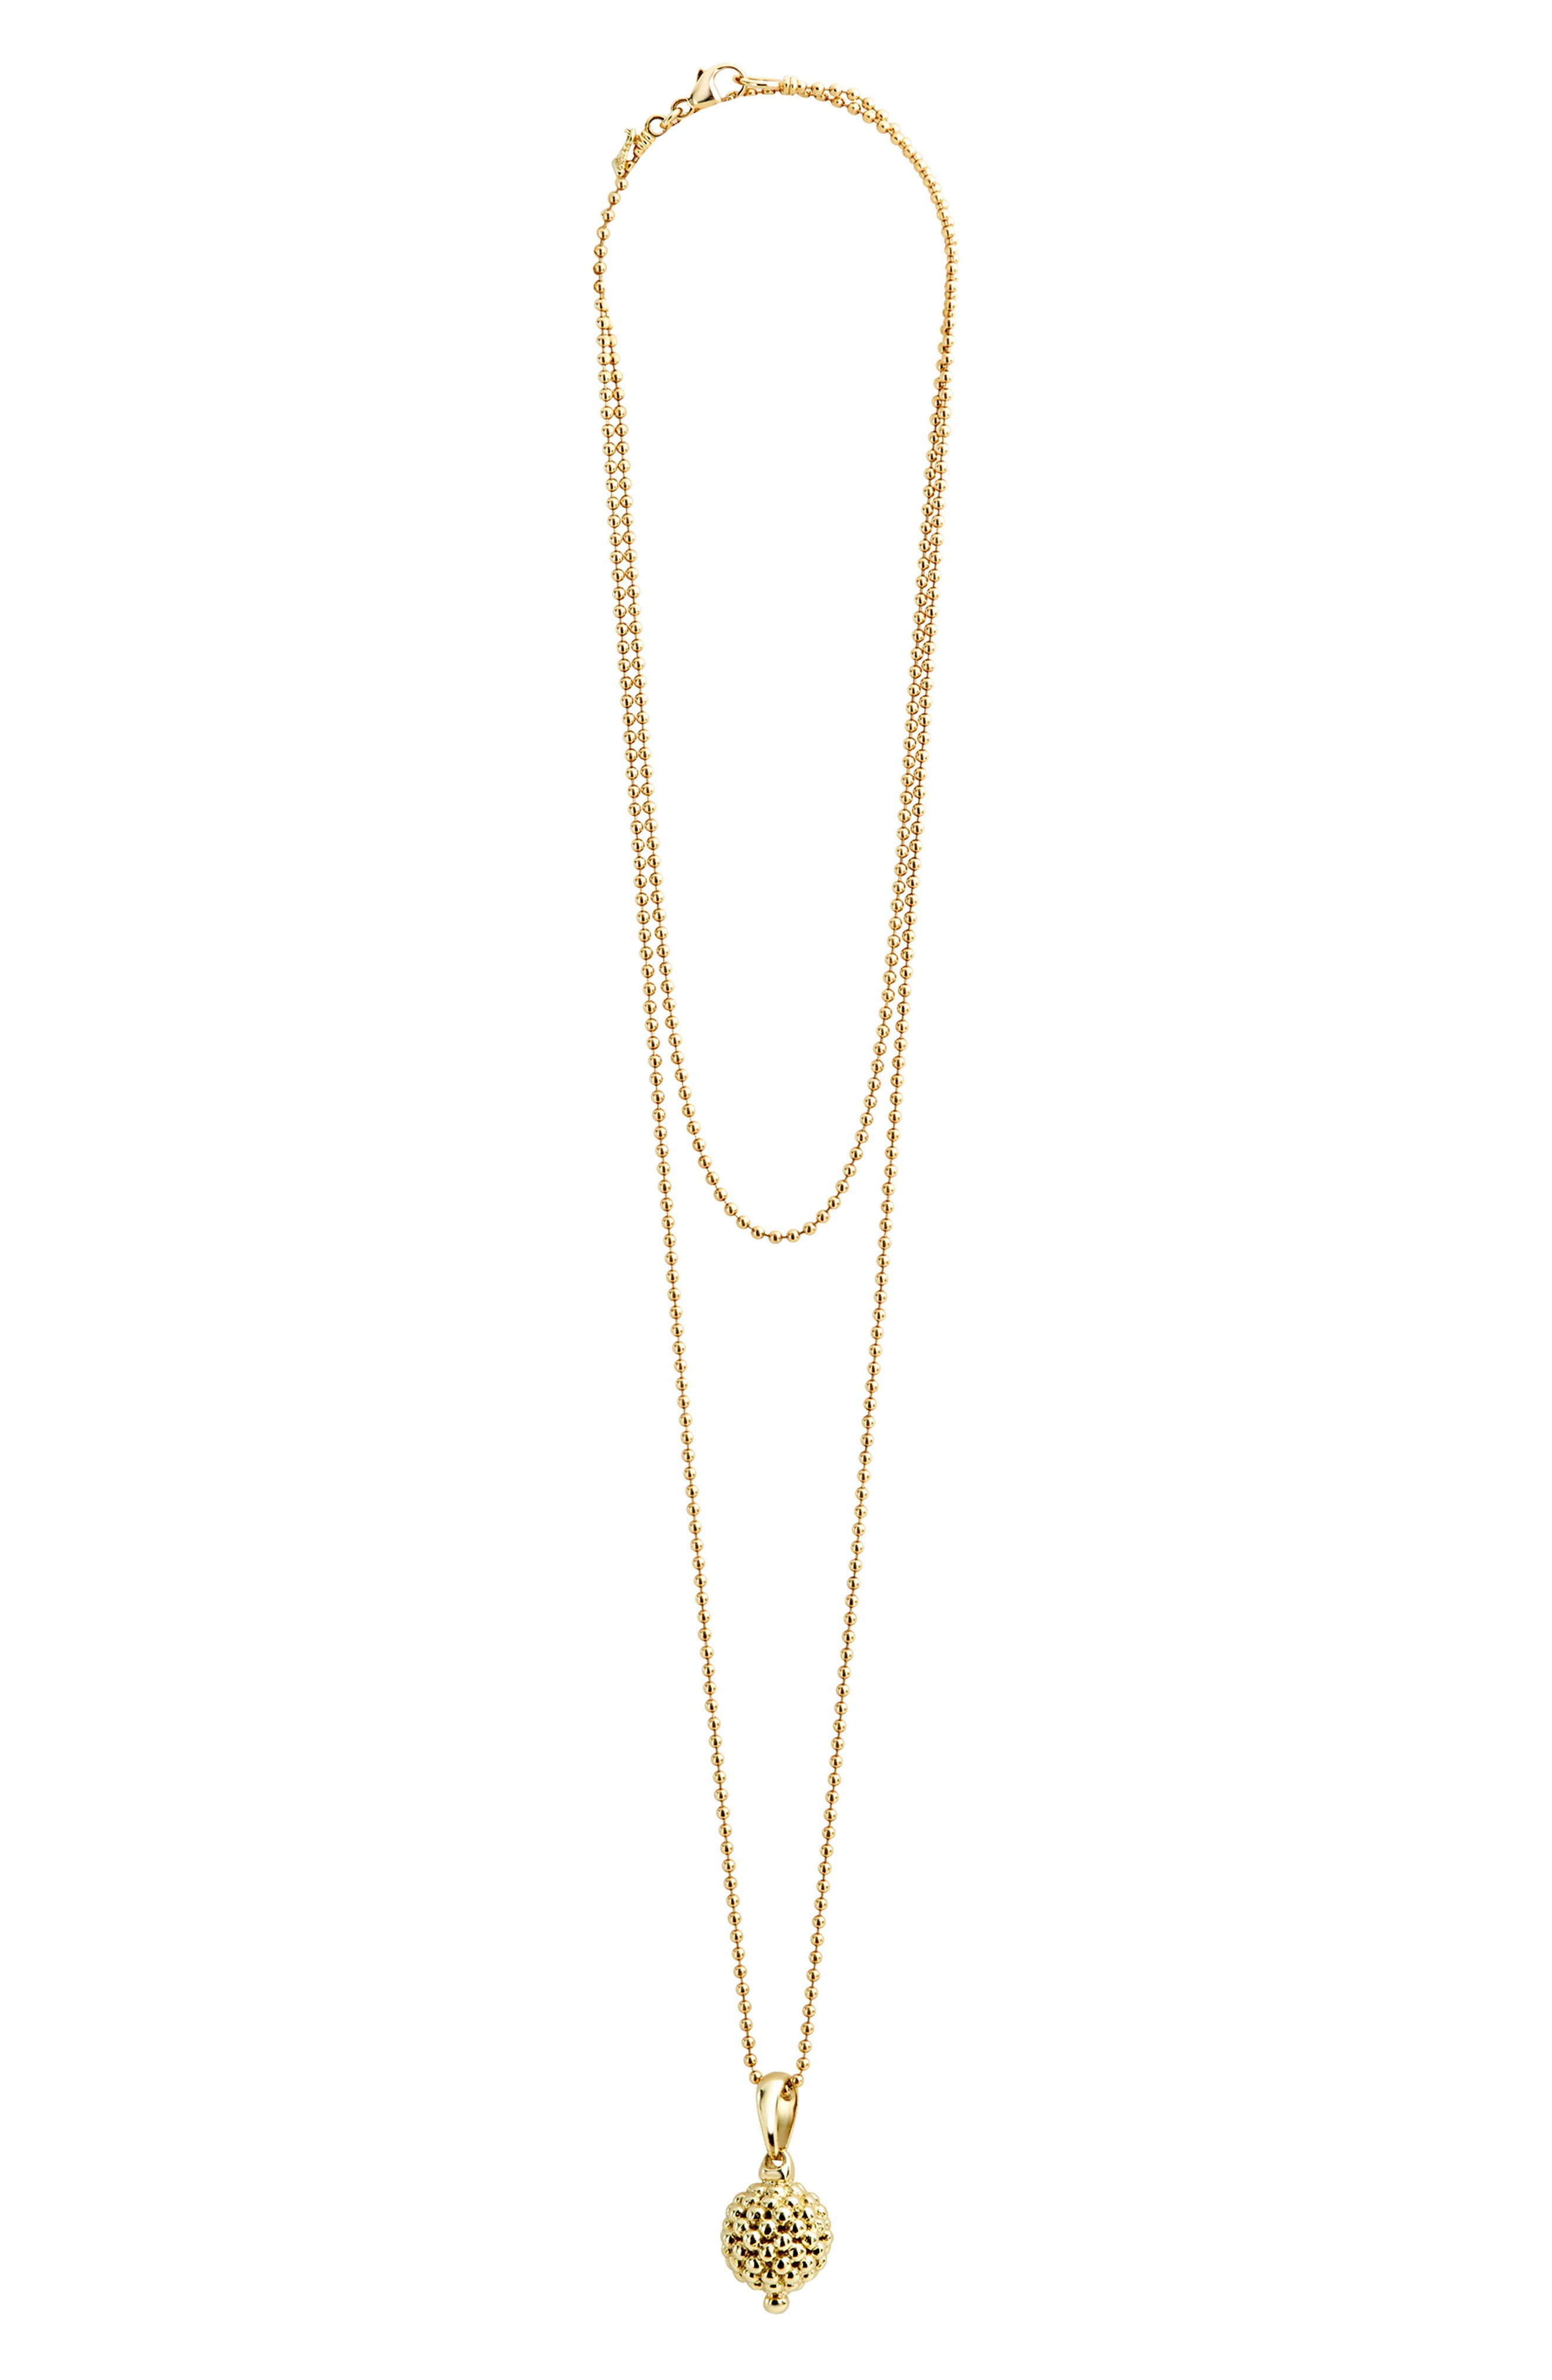 Caviar Gold Ball Pendant Necklace,                         Main,                         color, Gold